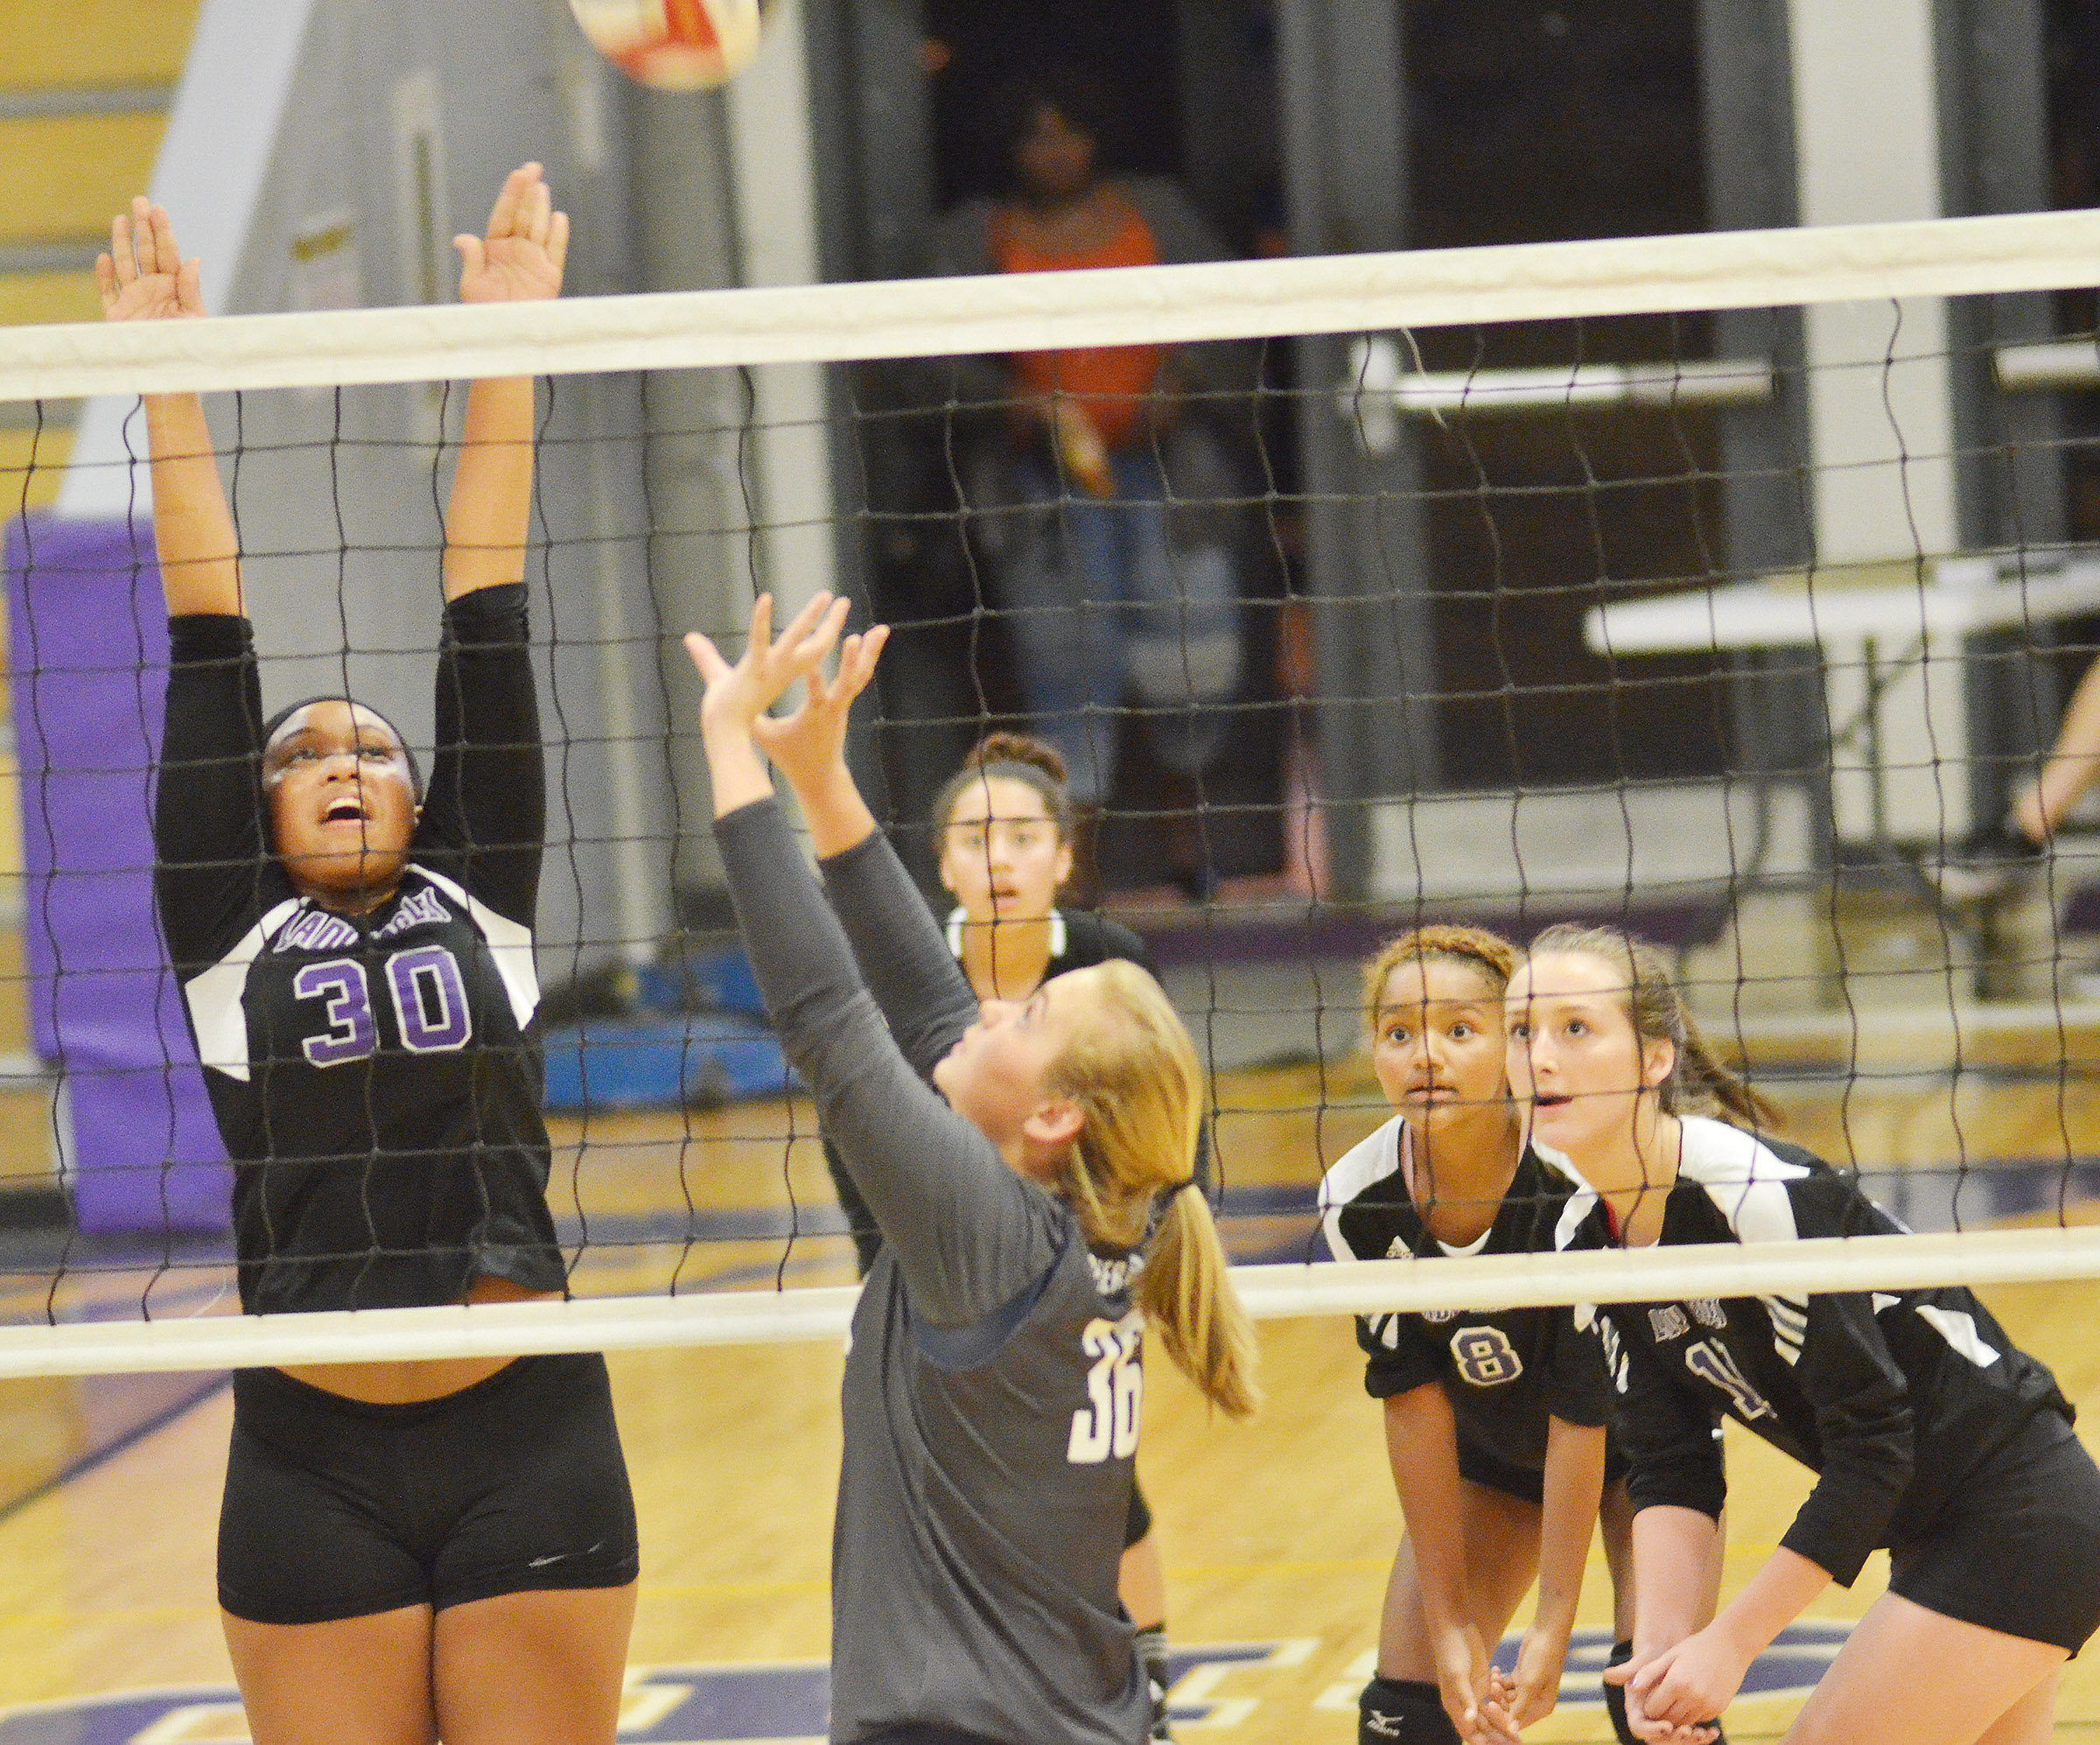 CHS sophomore Ketayah Taylor jumps to block a shot.